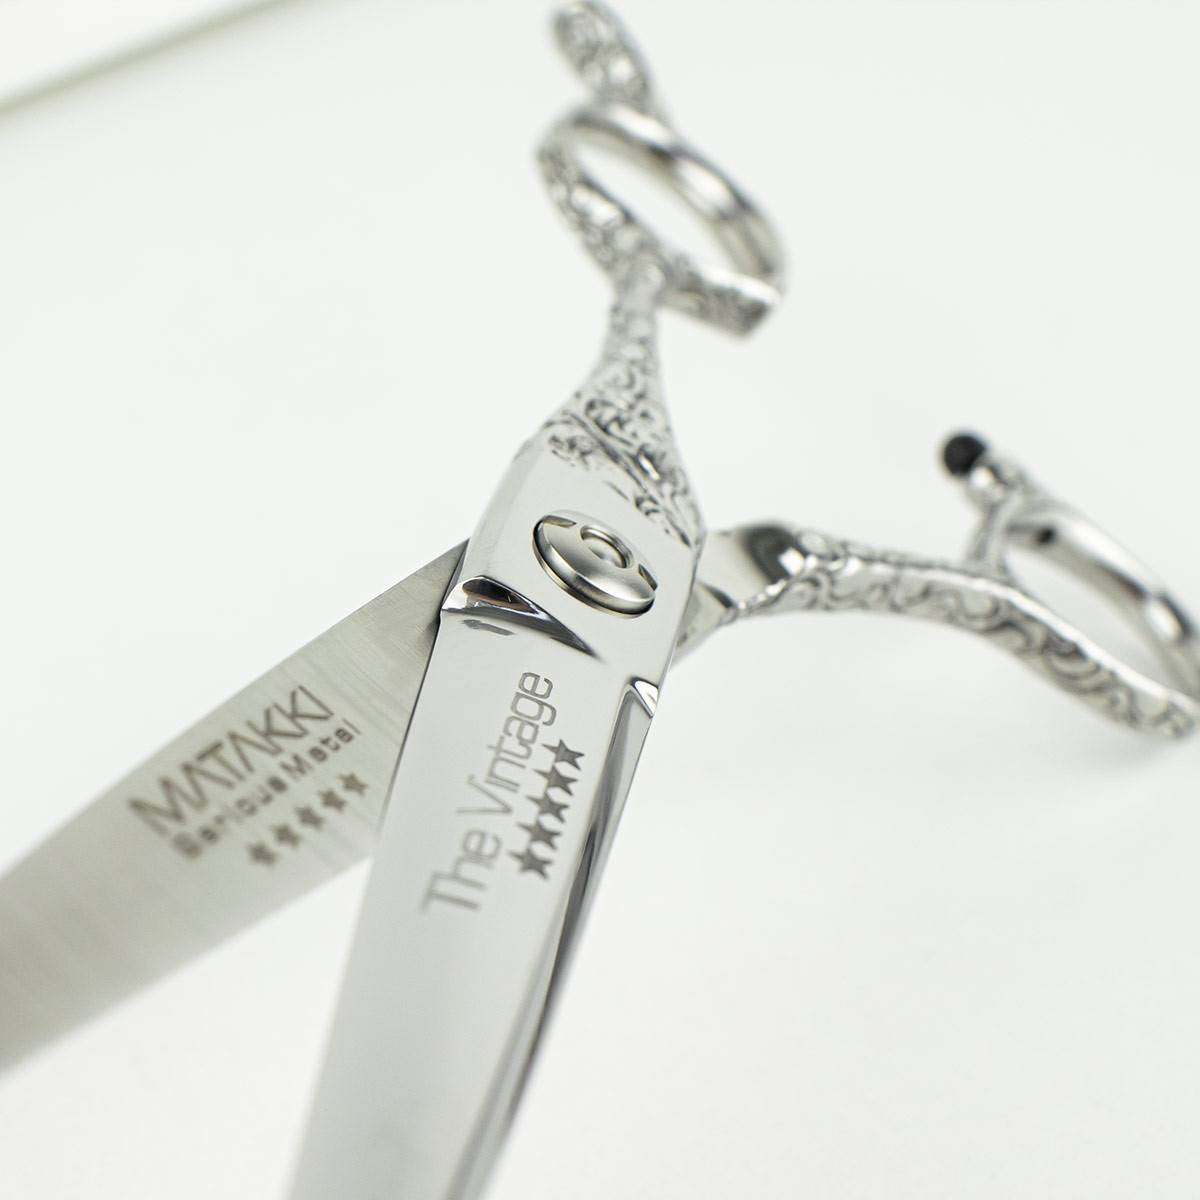 Picture of The Vintage Professional Hair Cutting Scissor